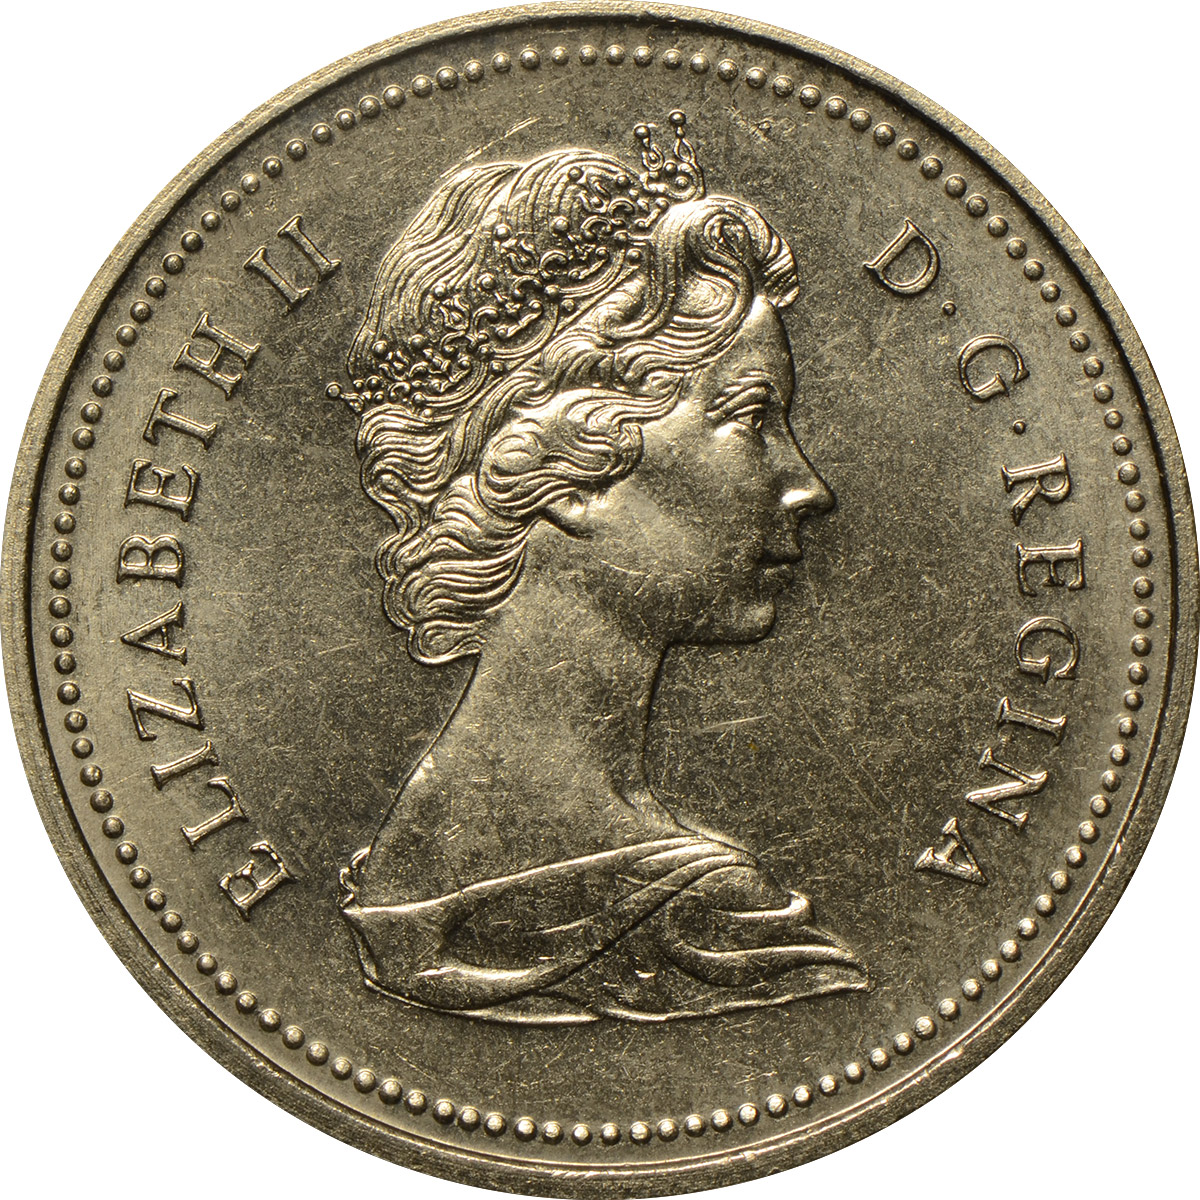 MS-60 - 1 dollar 1965 to 1989 - Elizabeth II